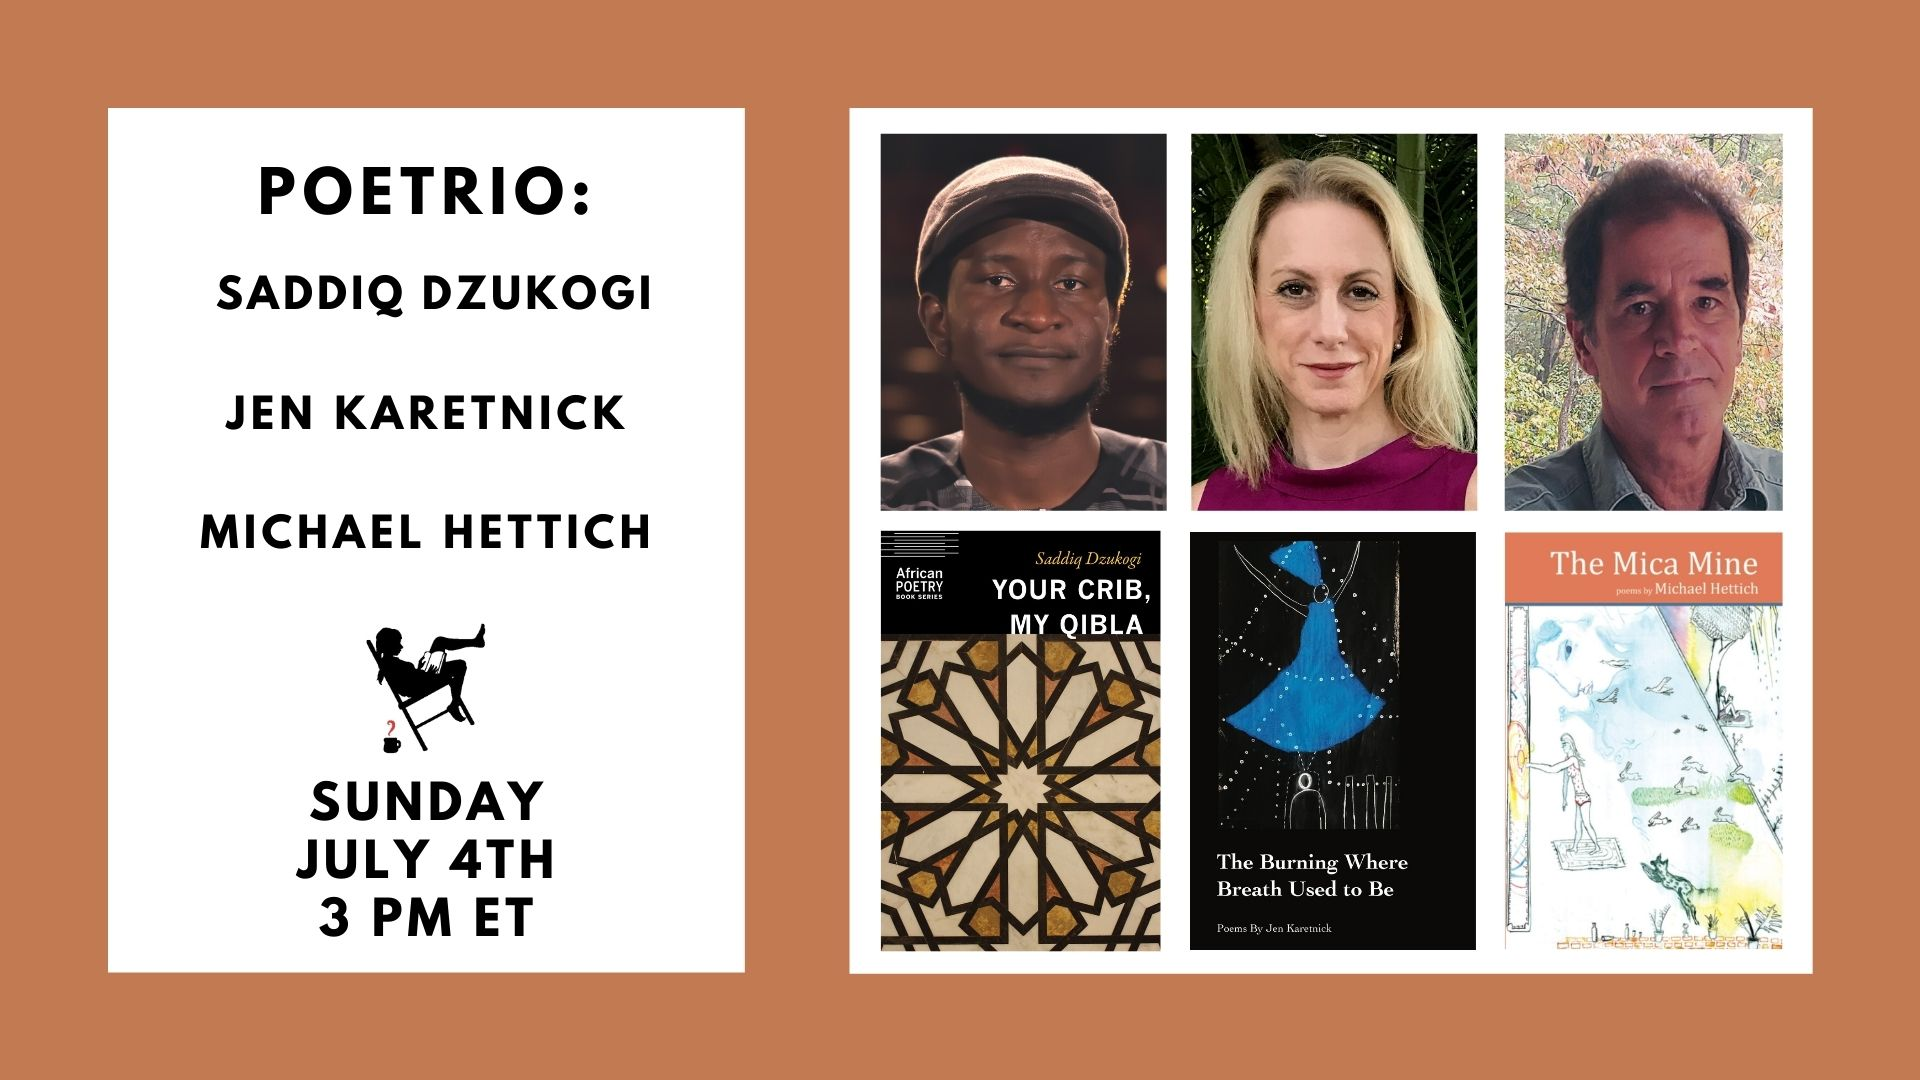 Image is of a burnt orange background and white blocks containing: Poetrio; book covers; headshots; the names Saddiq Dzukogi, Jen Karetnick, and Michael Hettich; and the event date of 7/4/21 at 3pm.